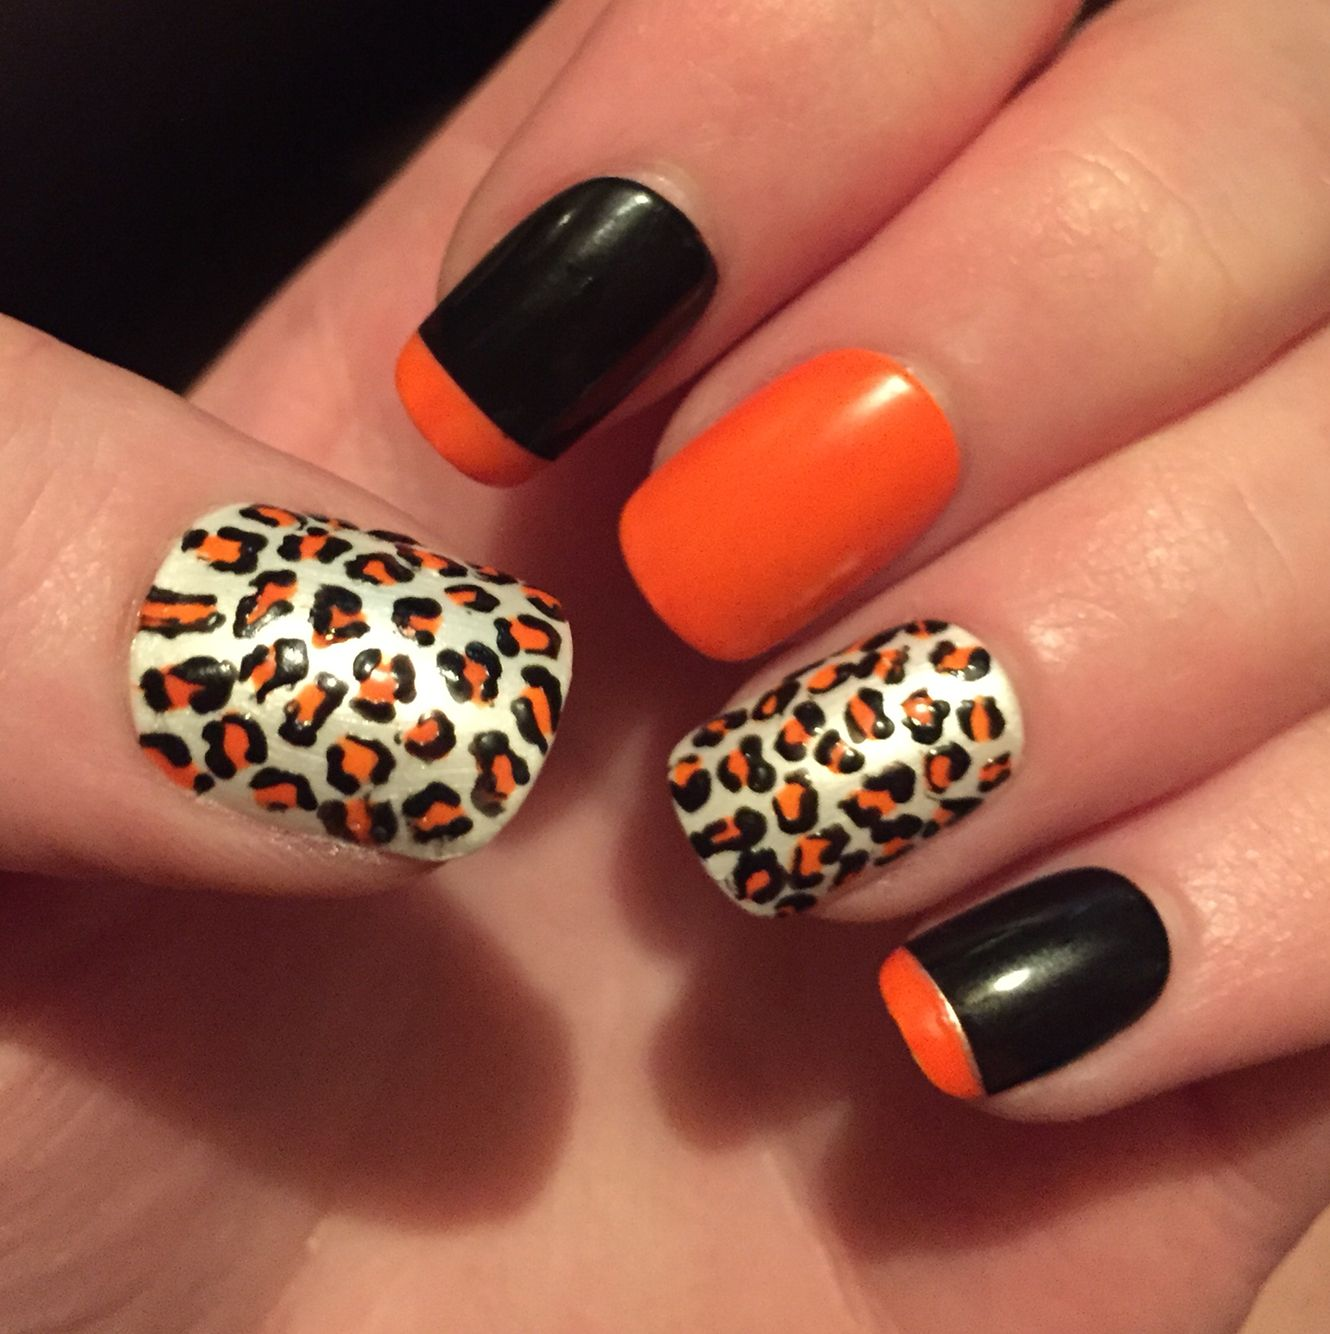 Neon orange leopard nail art | Nail designs | Pinterest | Leopard ...